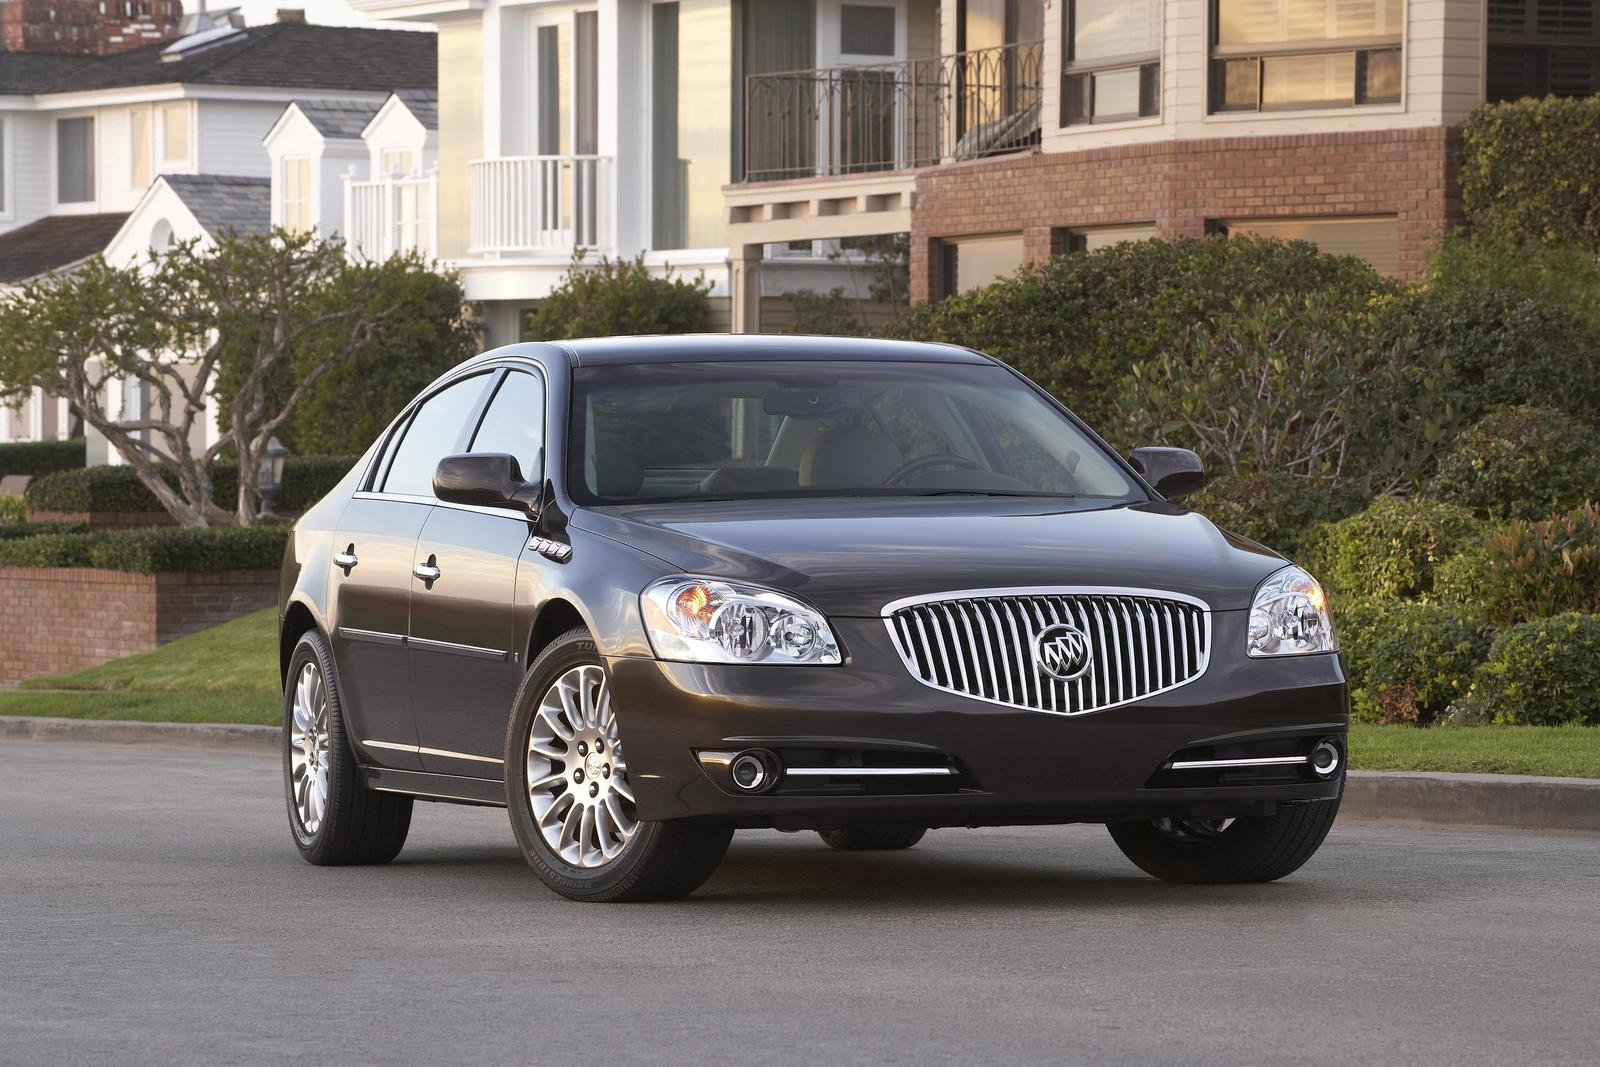 2008 buick lucerne super picture 156842 car review. Black Bedroom Furniture Sets. Home Design Ideas